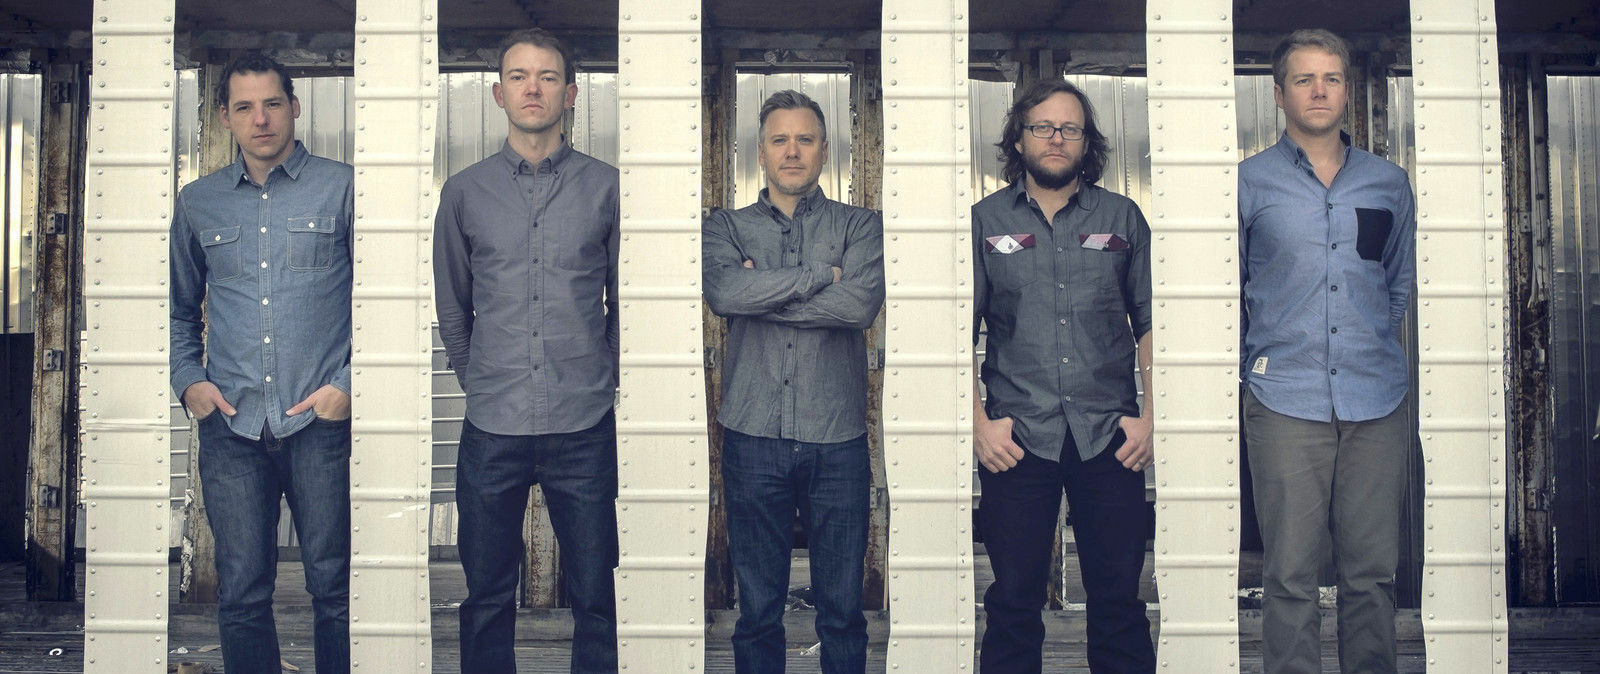 The Infamous Stringdusters with Cris Jacobs Tickets (16+ or accompanied by adult)